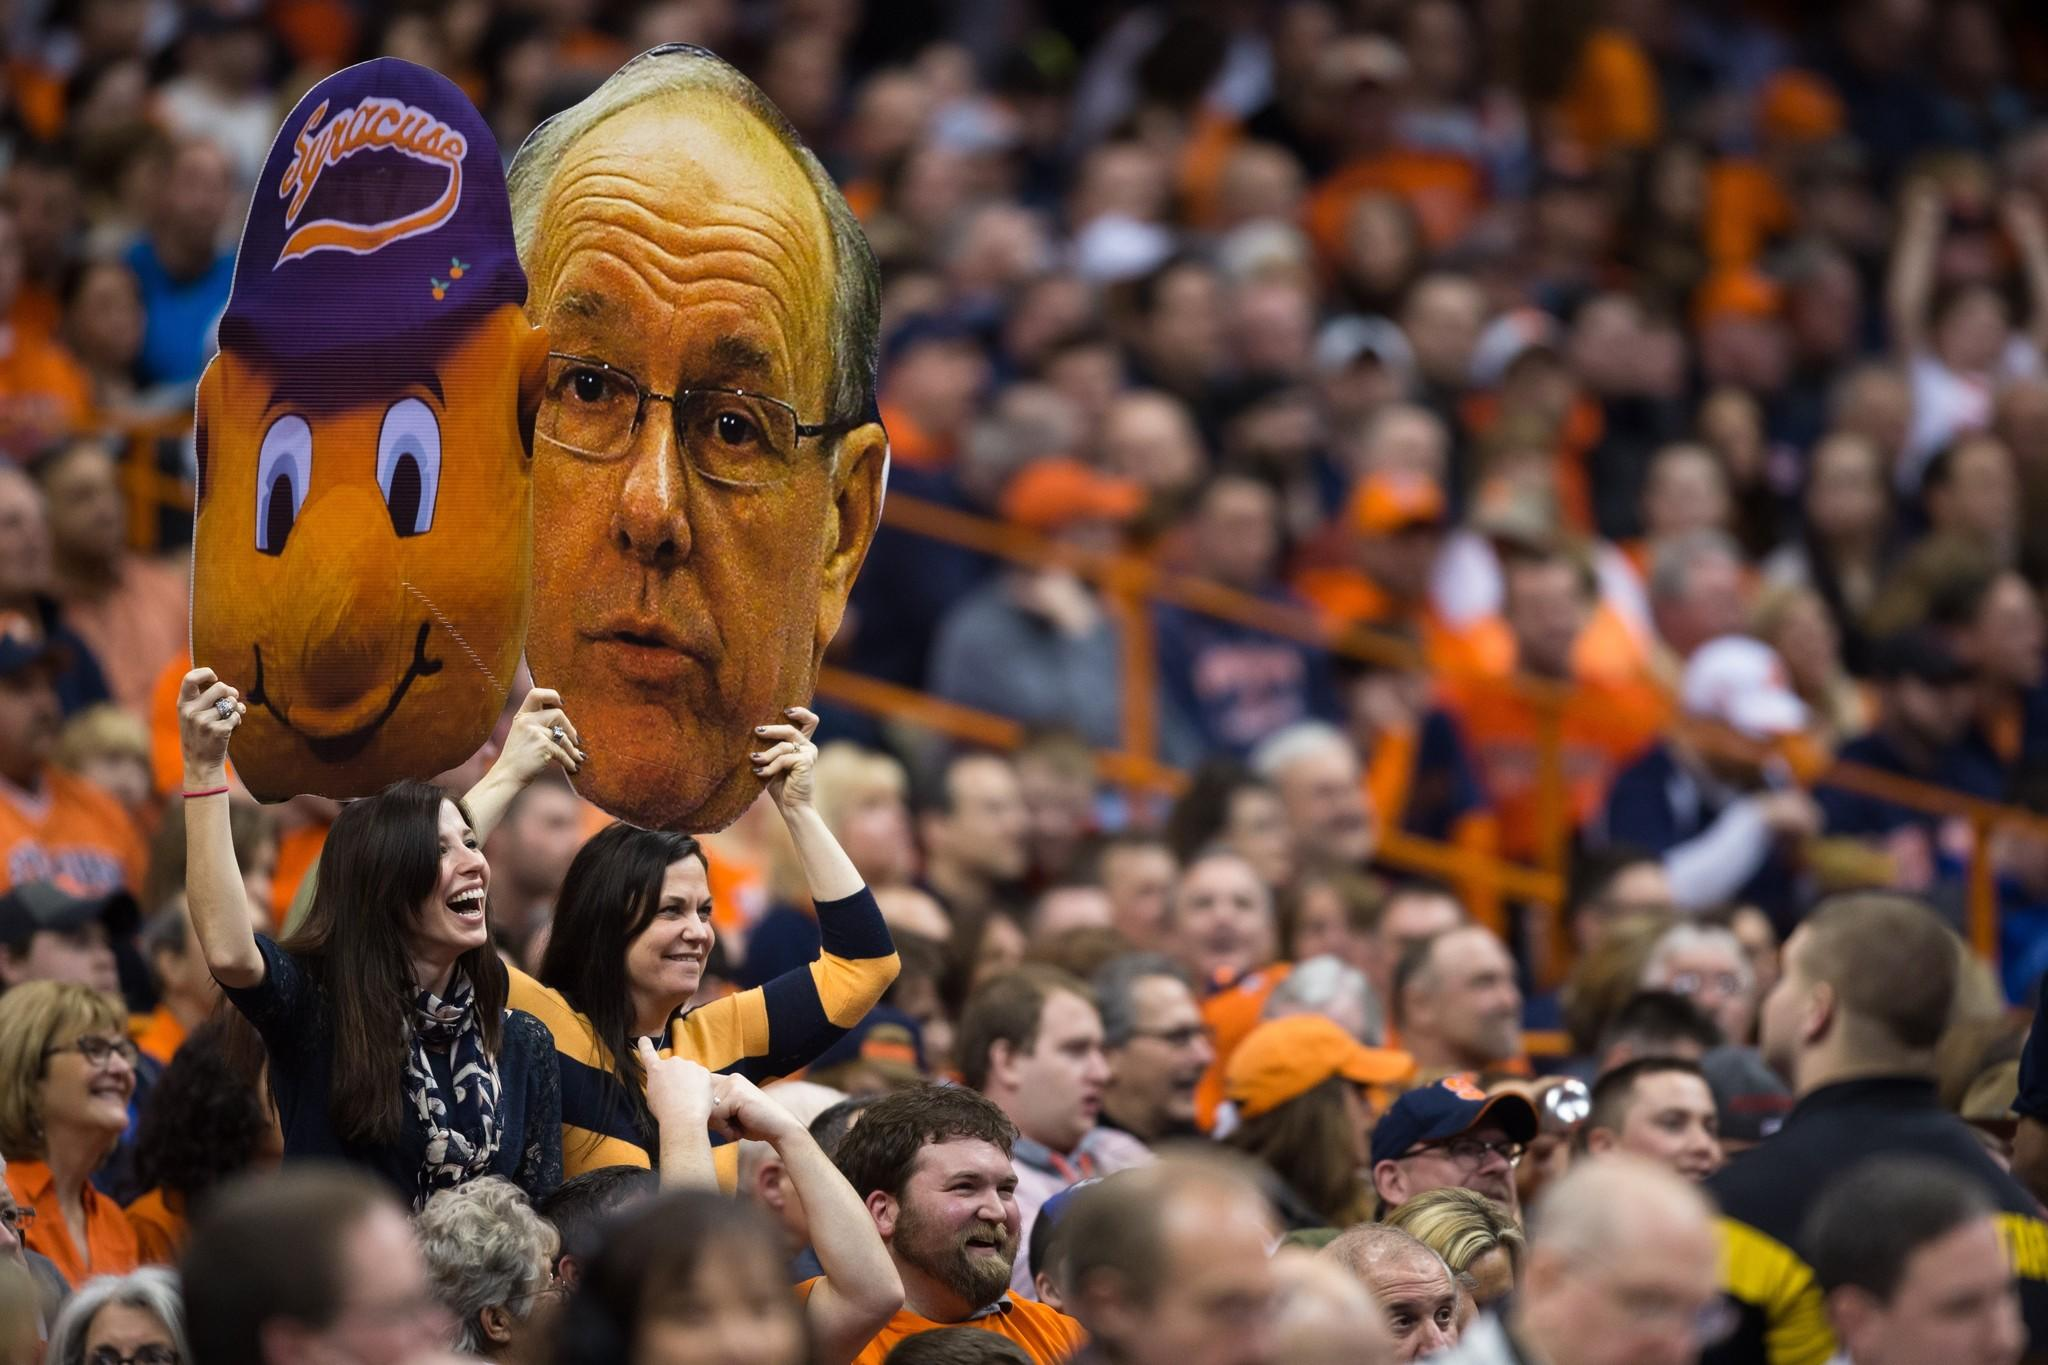 Syracuse fans hold up jumbo photographs of the team's mascot Otto and coach Jim Boeheim.